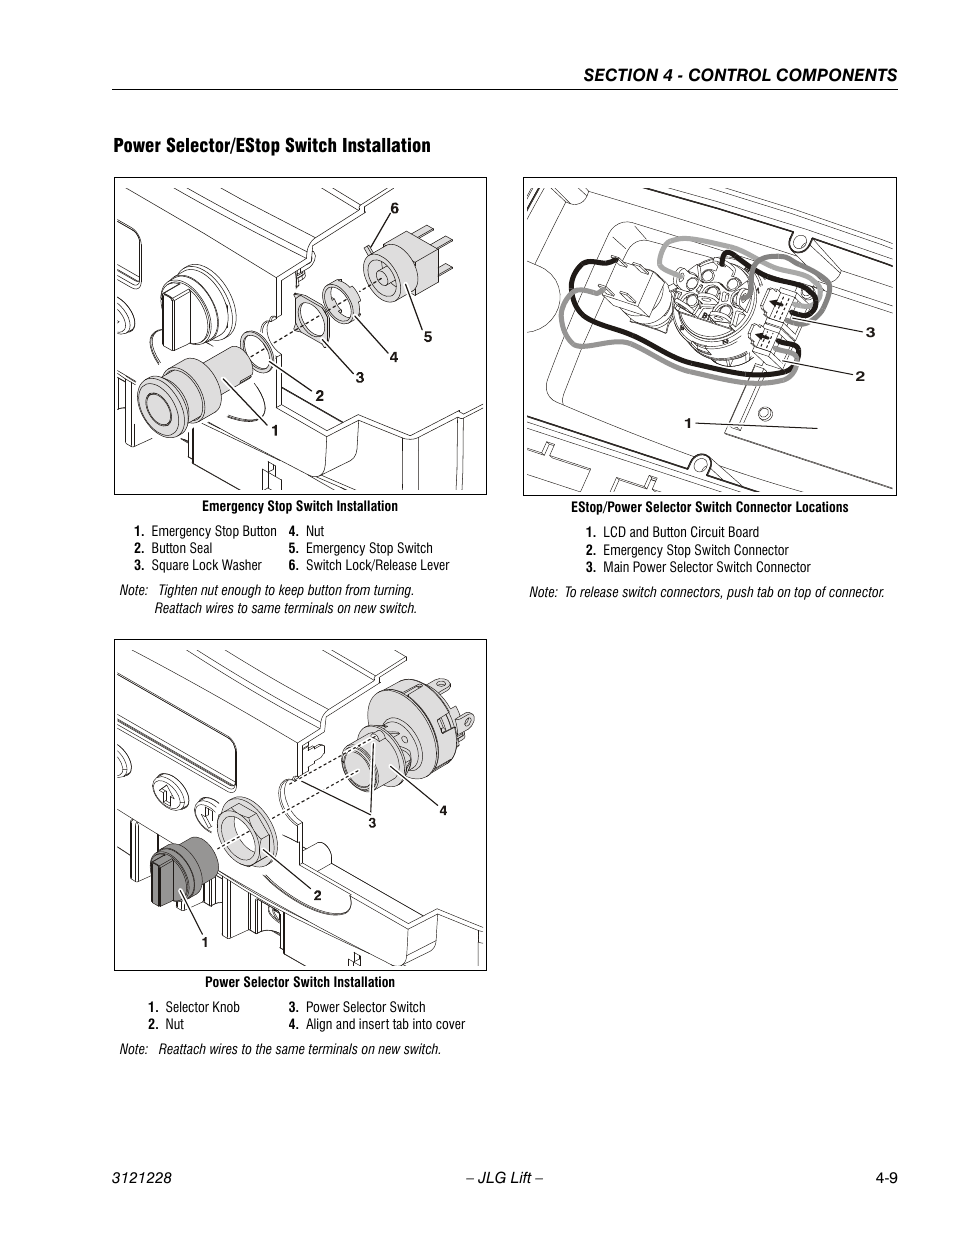 Power Selector Estop Switch Installation 2 Circuit Rotary Wiring Diagram 9 Jlg 10msp Service Manual User Page 73 154